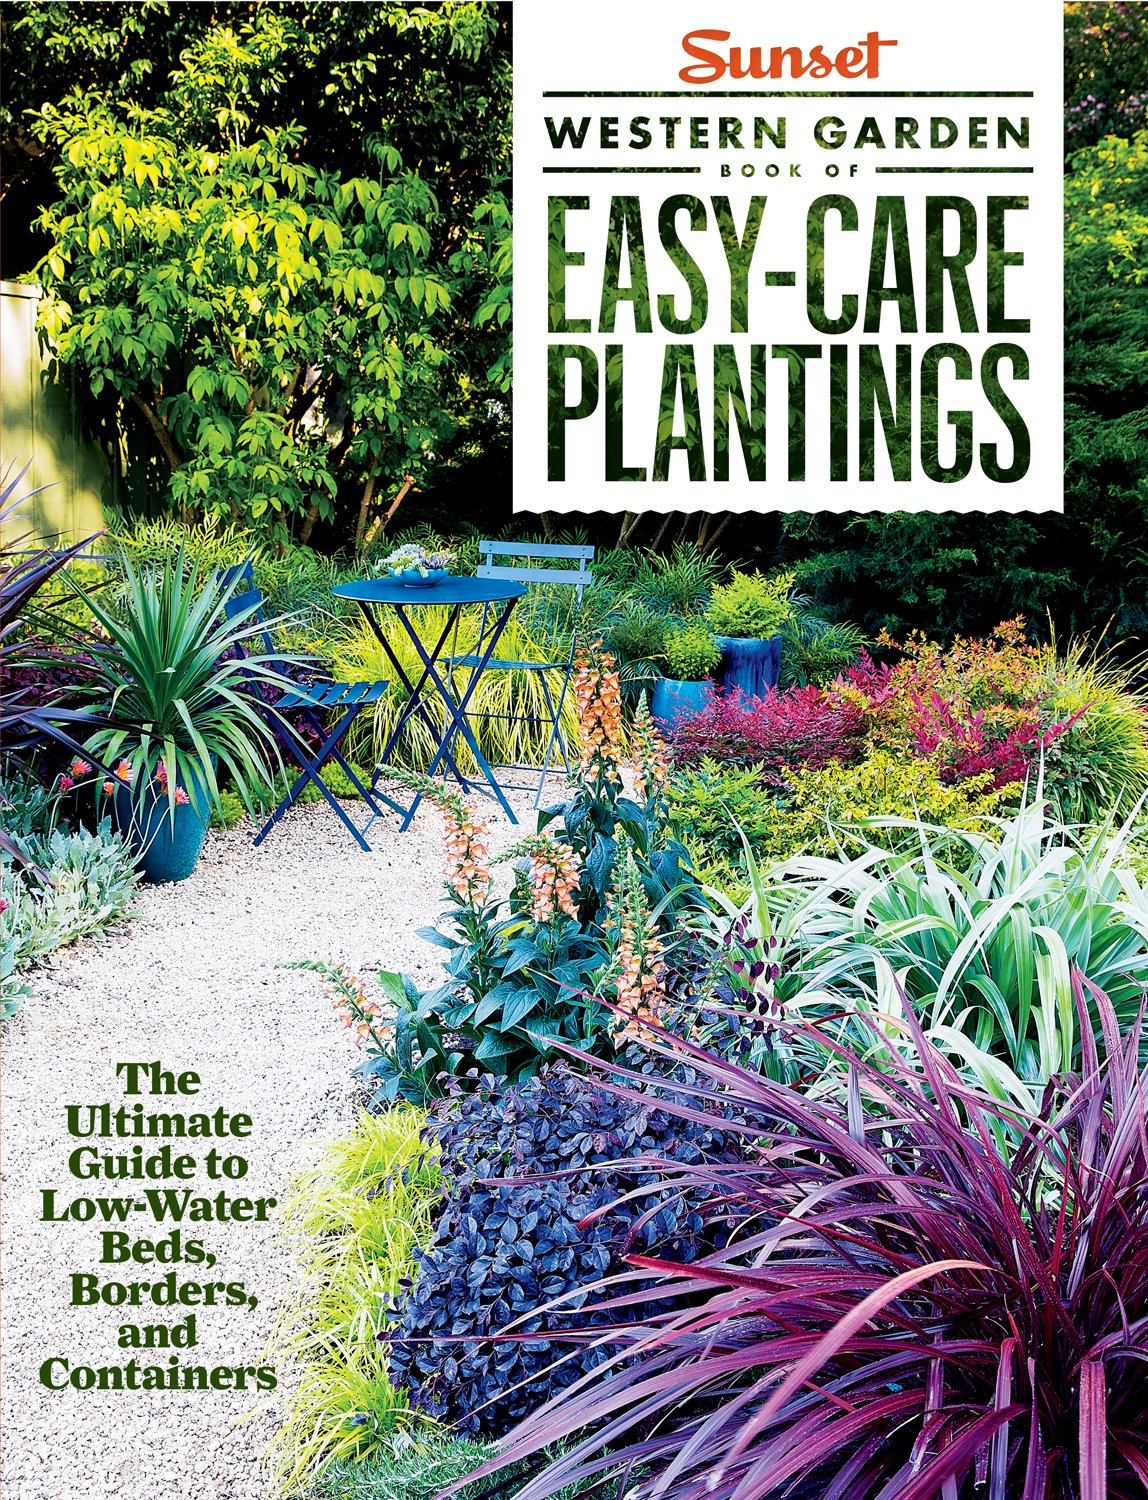 Sunset Western Garden Book of Easy Care Plantings The Ultimate